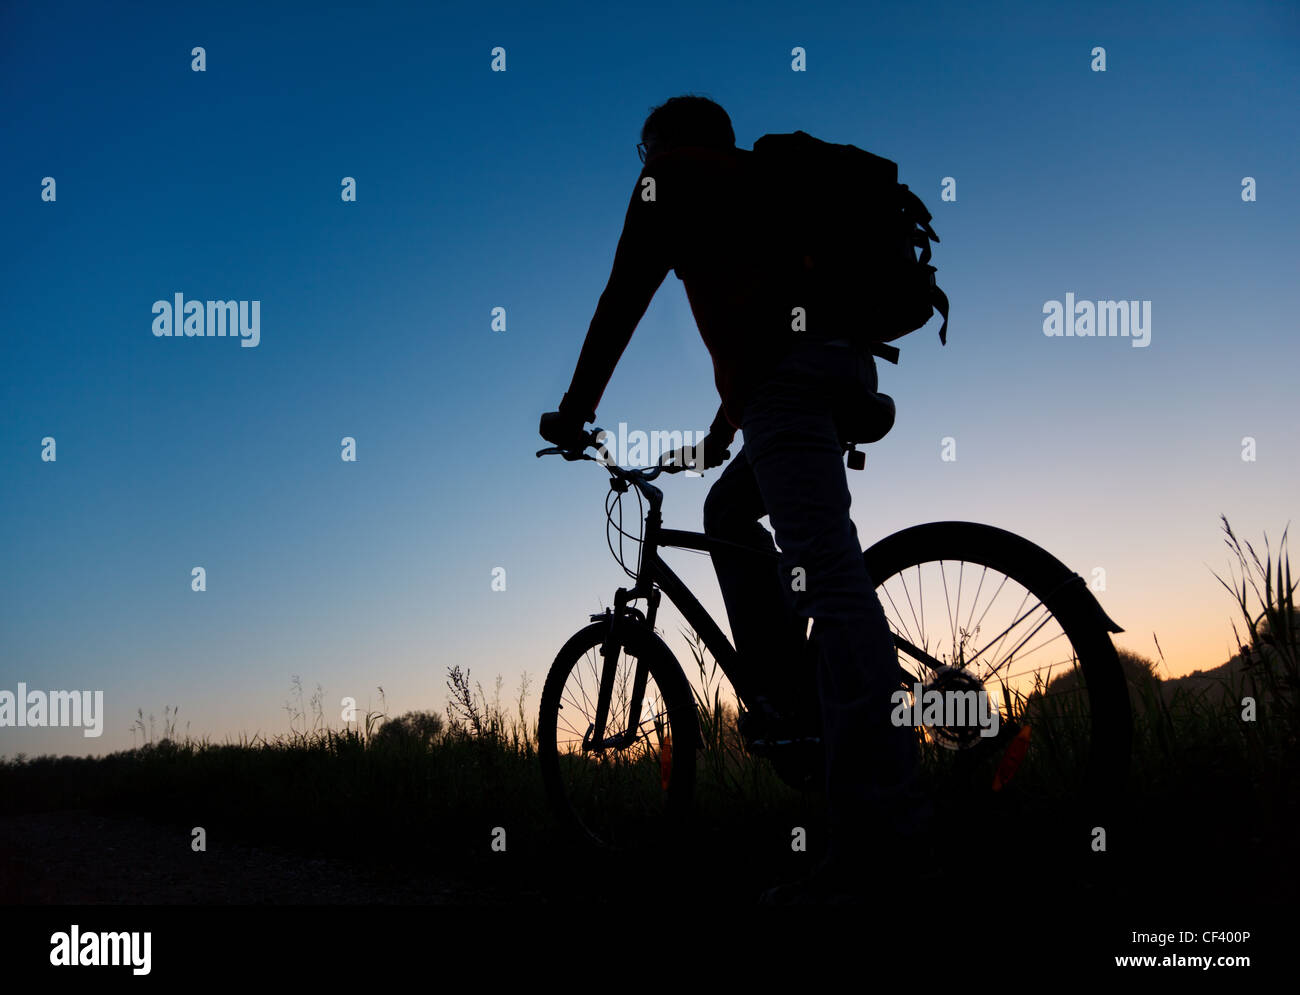 Silhouette of the bicyclist against the dark sky - Stock Image